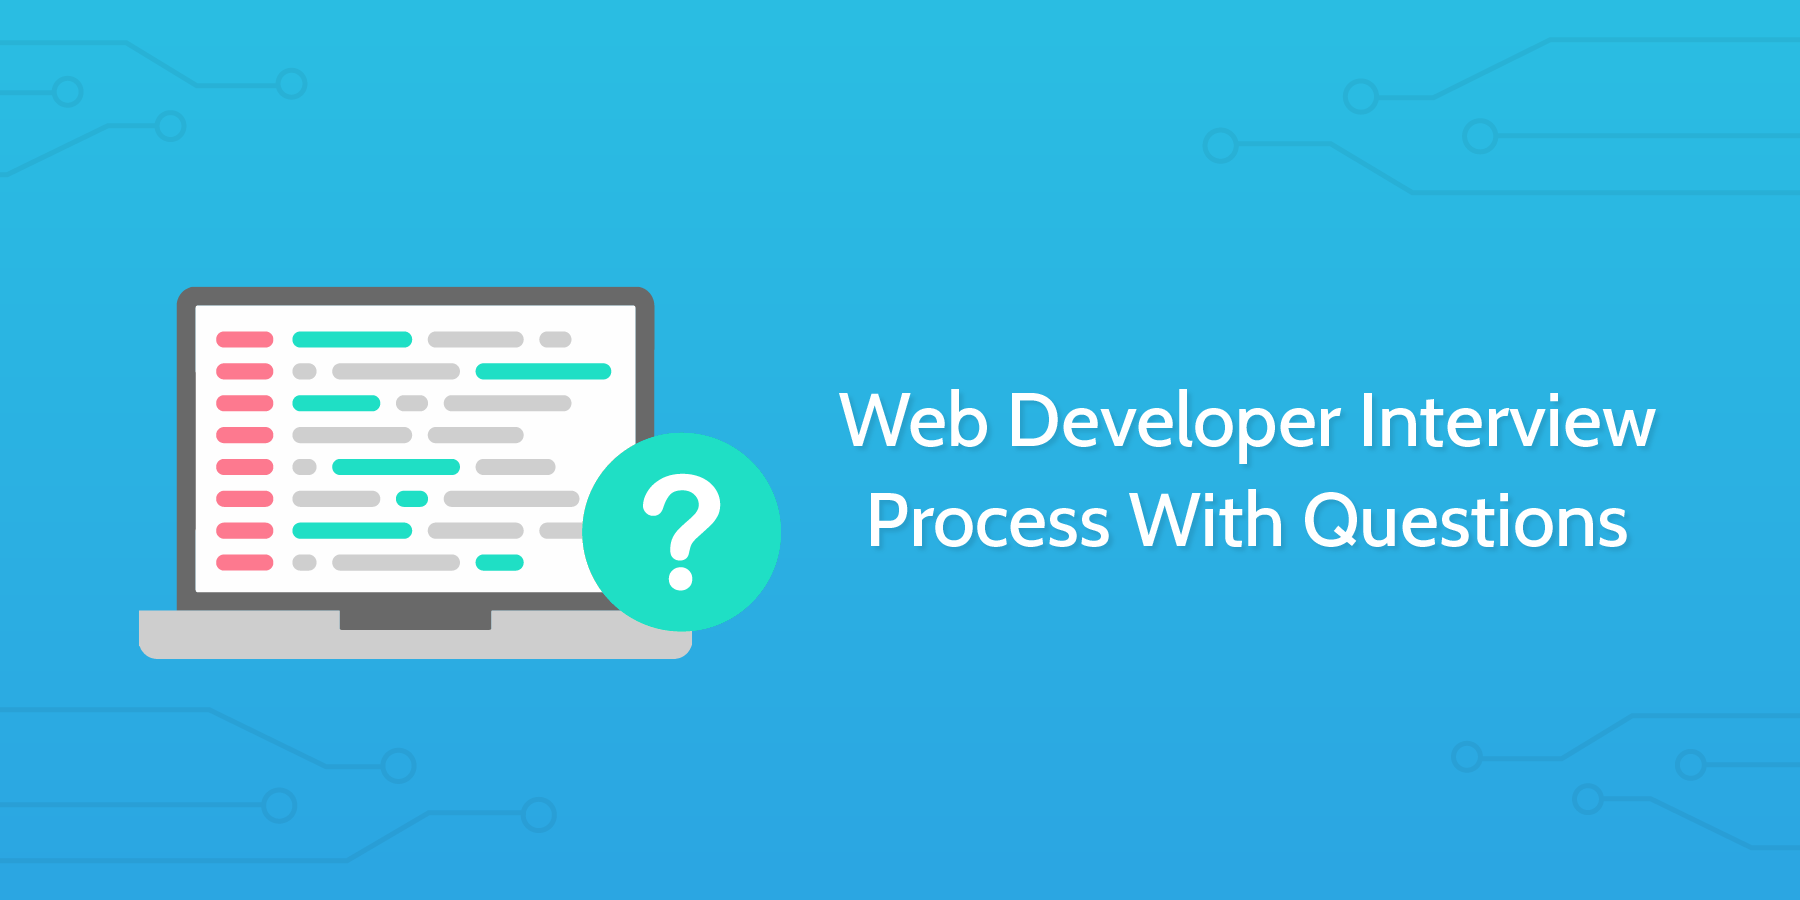 Web Developer Interview Process With Questions